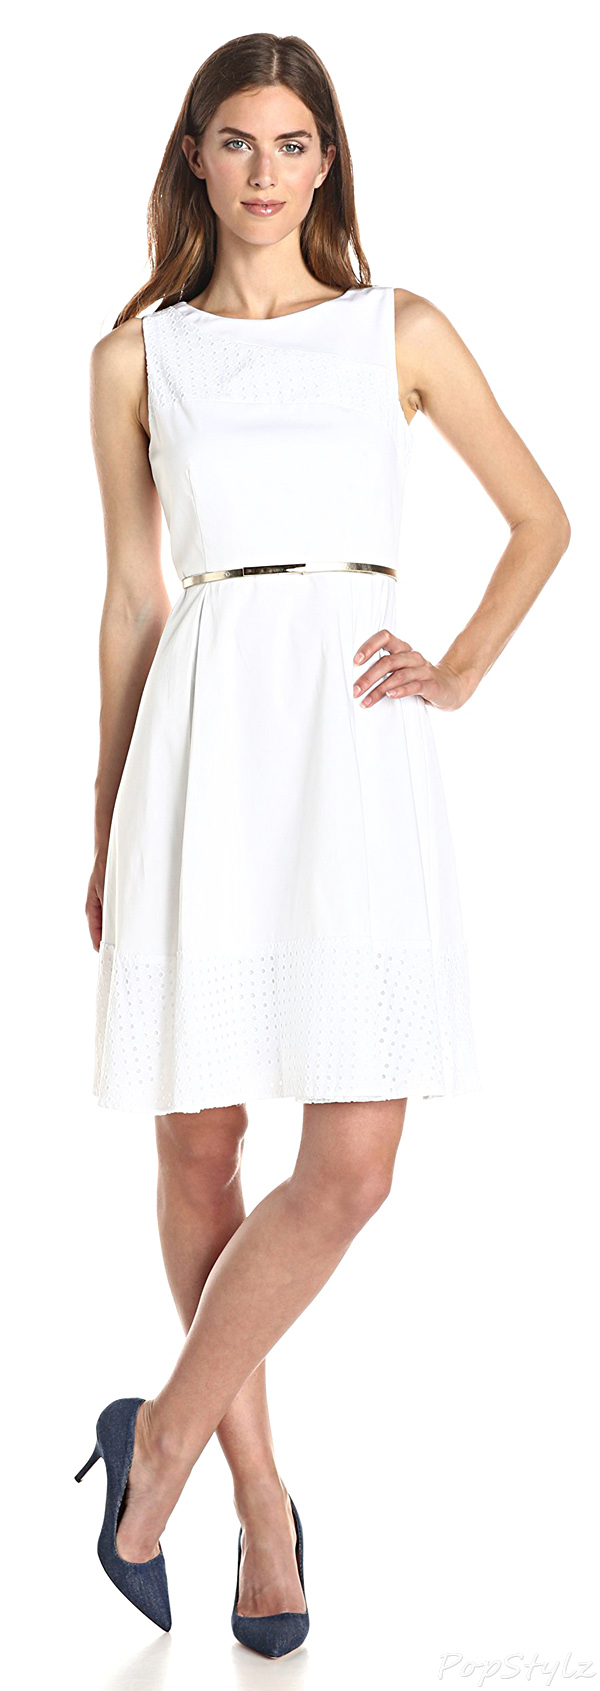 Calvin Klein Fit & Flare Dress with Eyelet Inserts